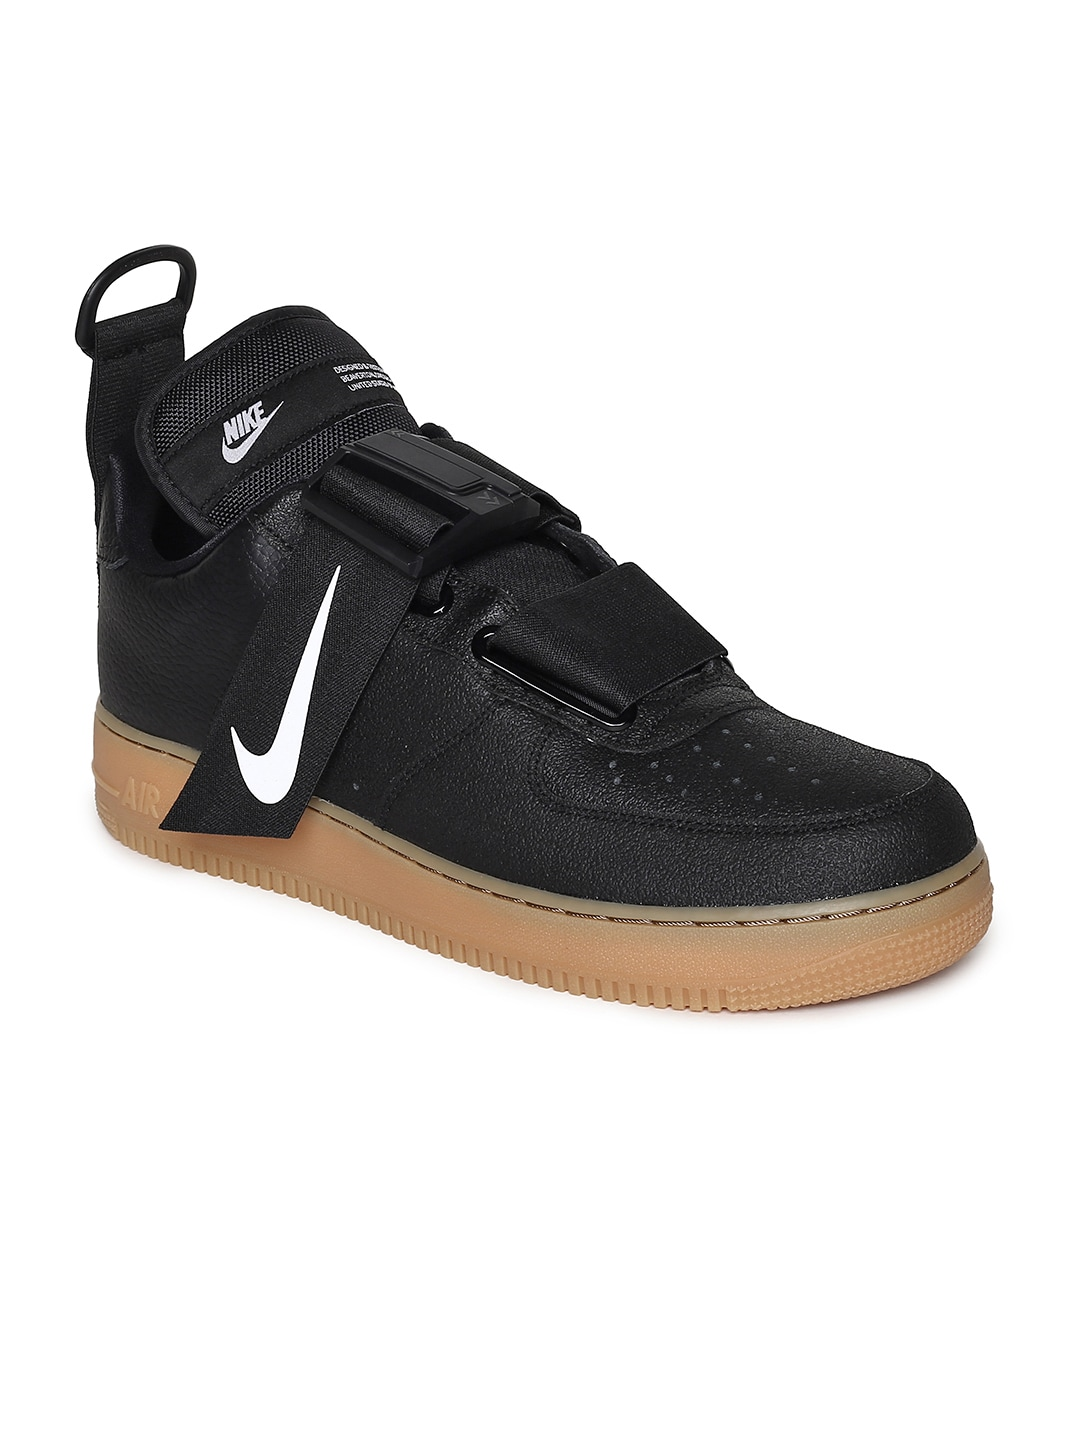 496e92a7446f Nike Air Force 1 Casual Shoes - Buy Nike Air Force 1 Casual Shoes online in  India